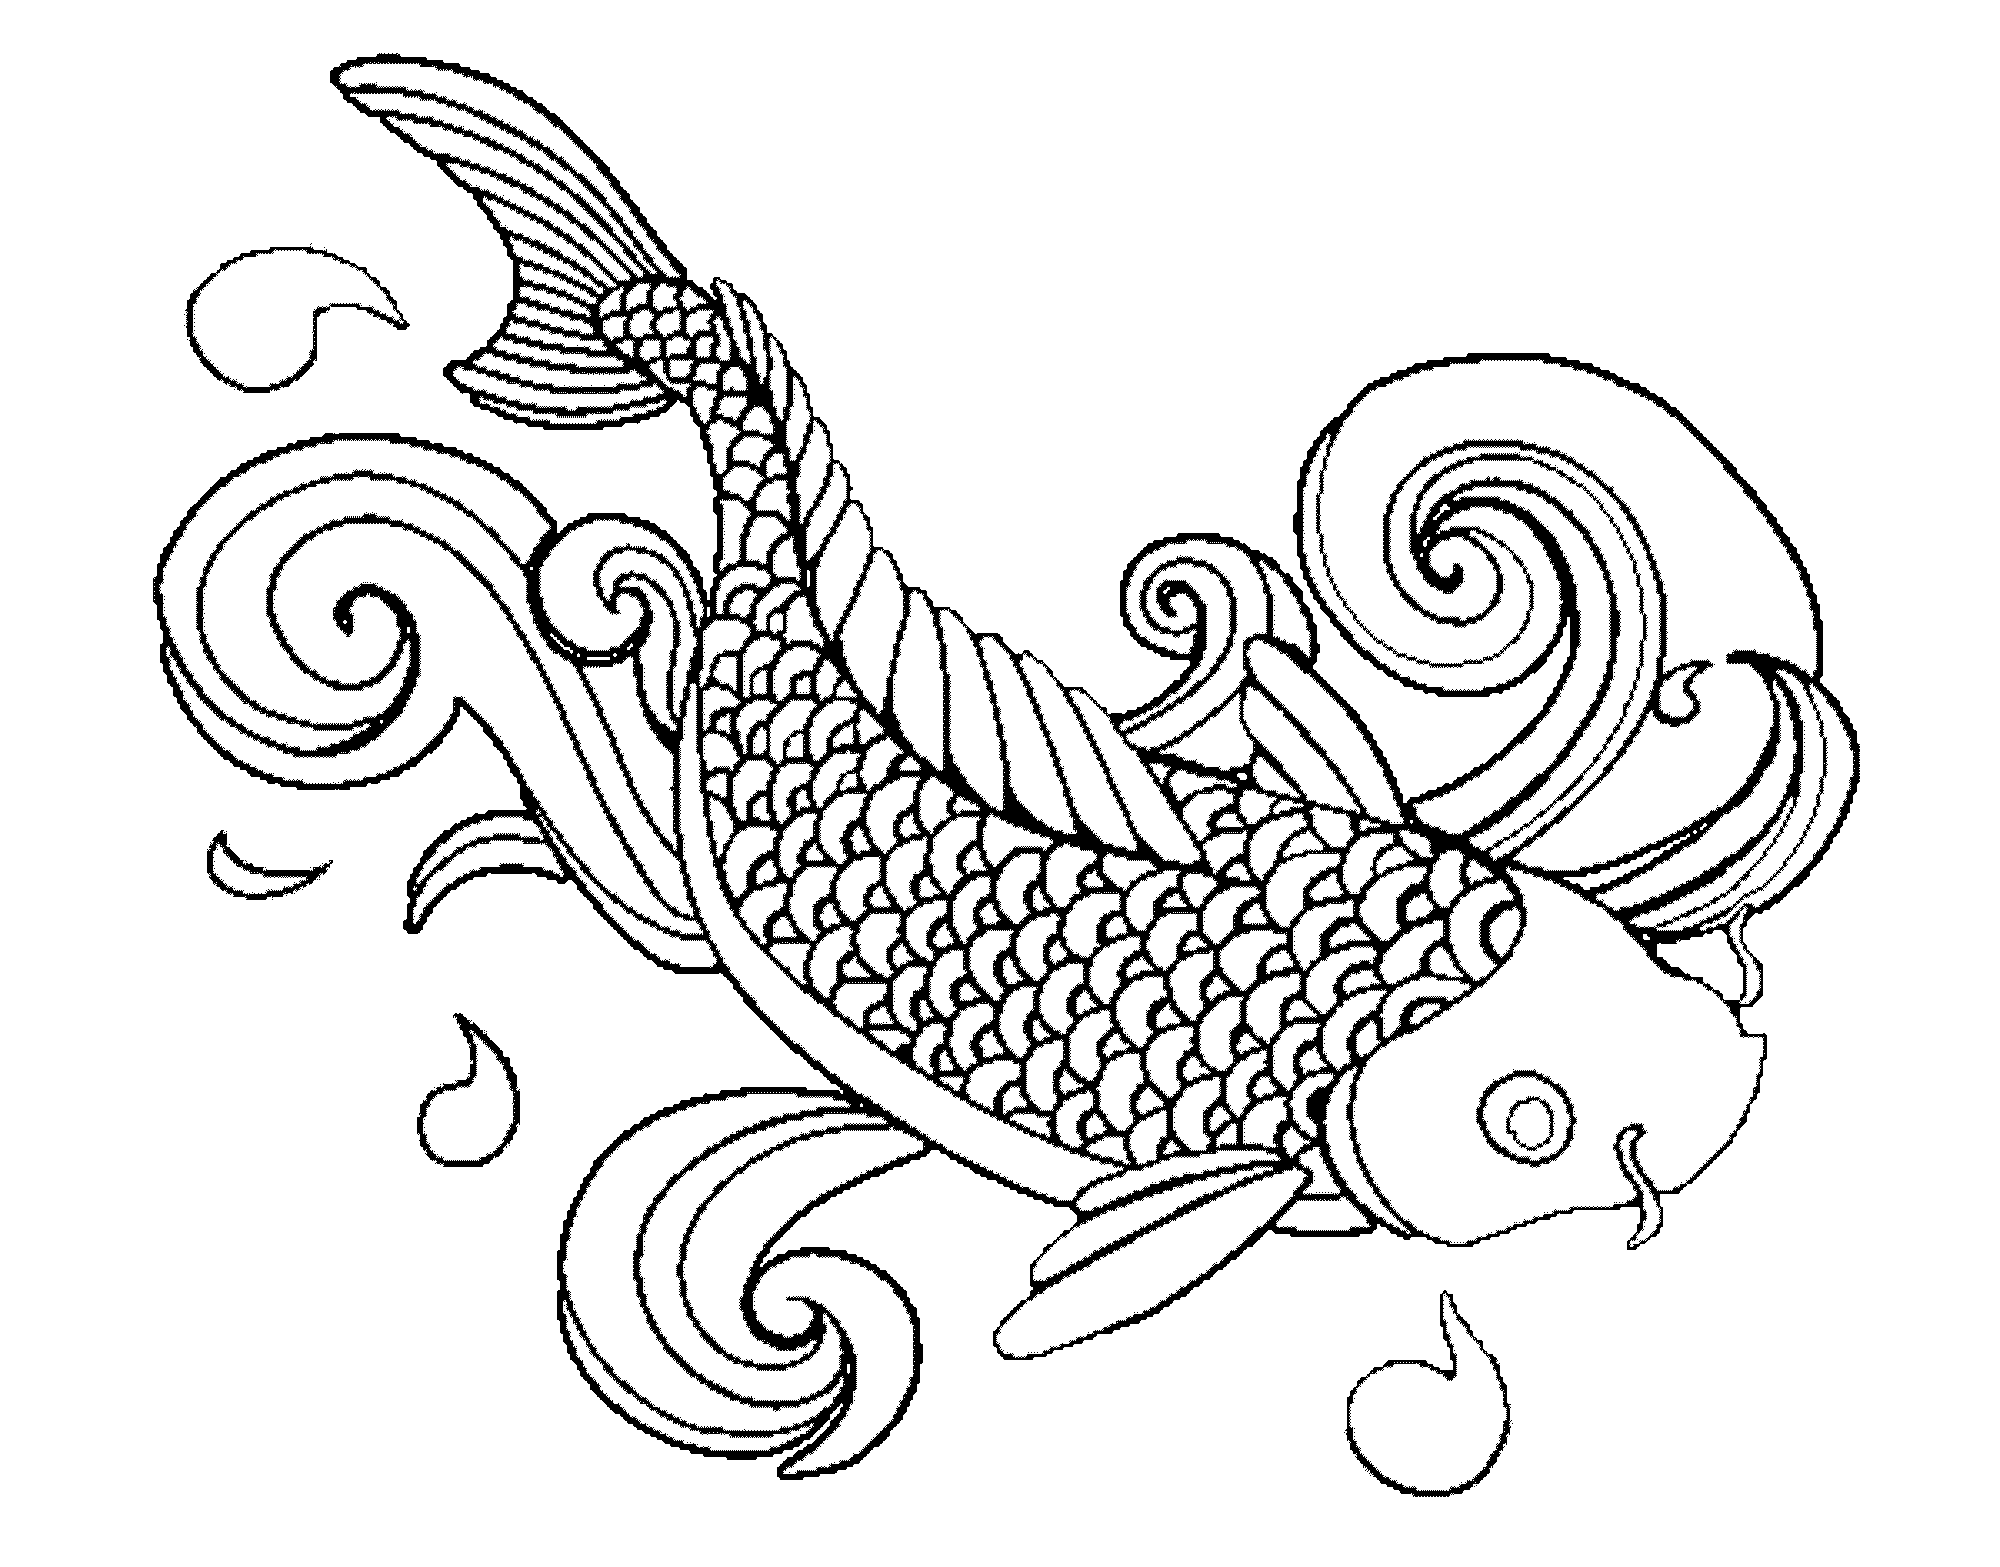 Coloring page fish printable kids colouring pages for Adult fish coloring pages